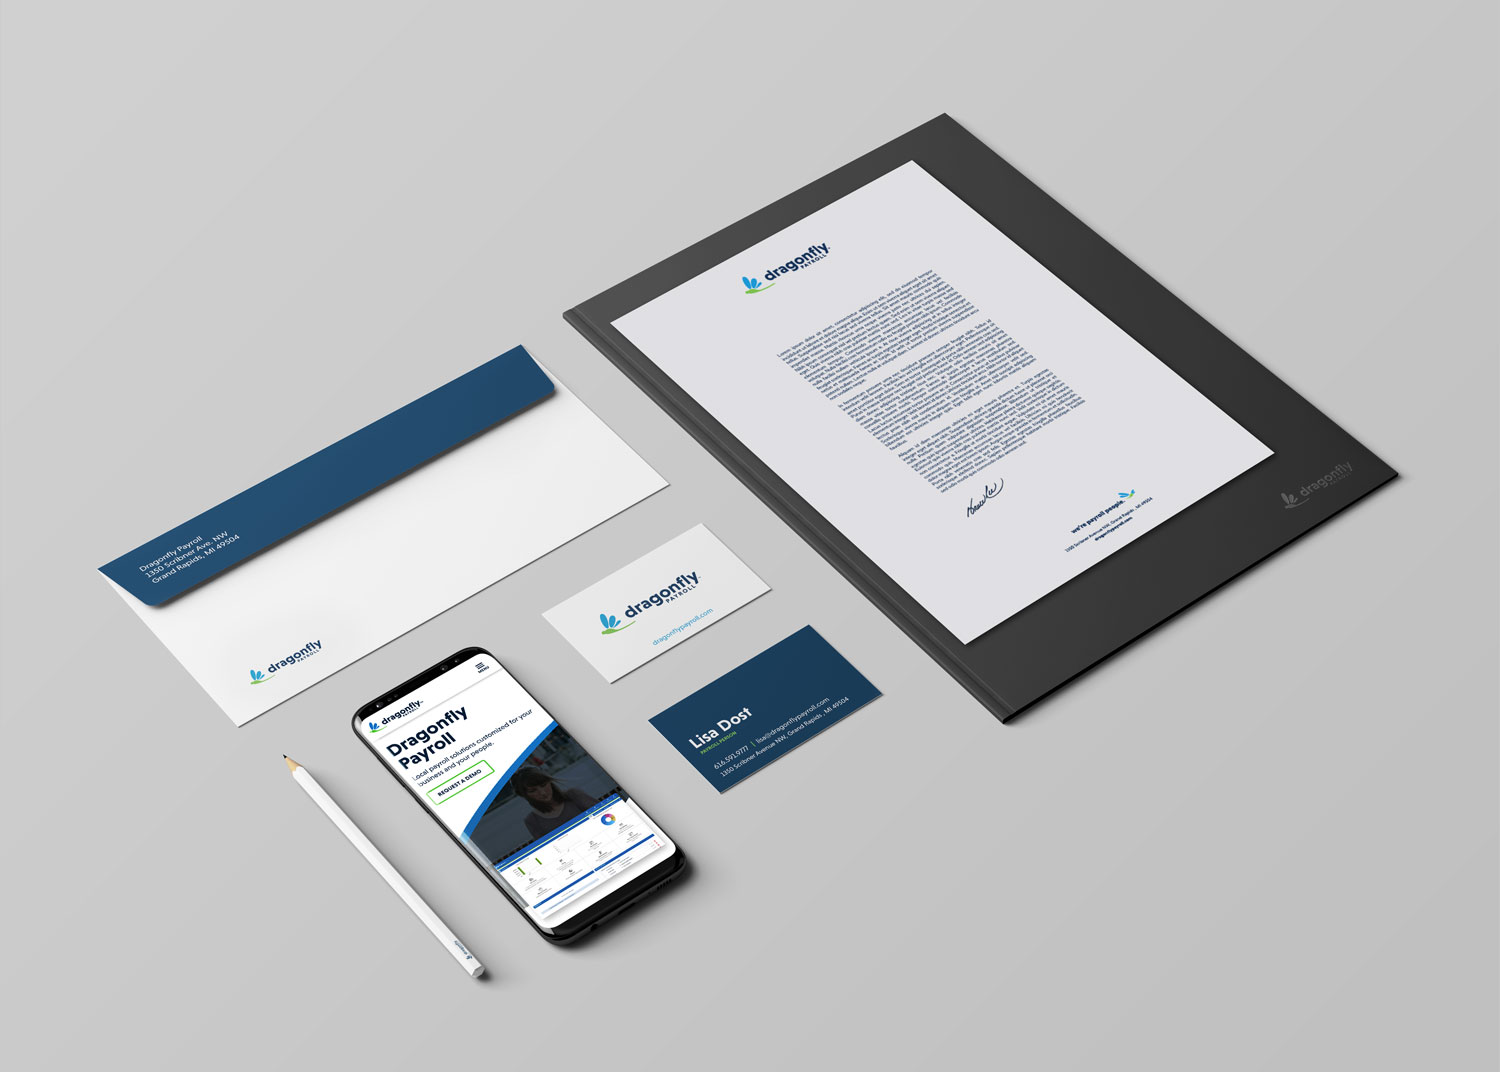 dragonfly-touchpoint-mockup